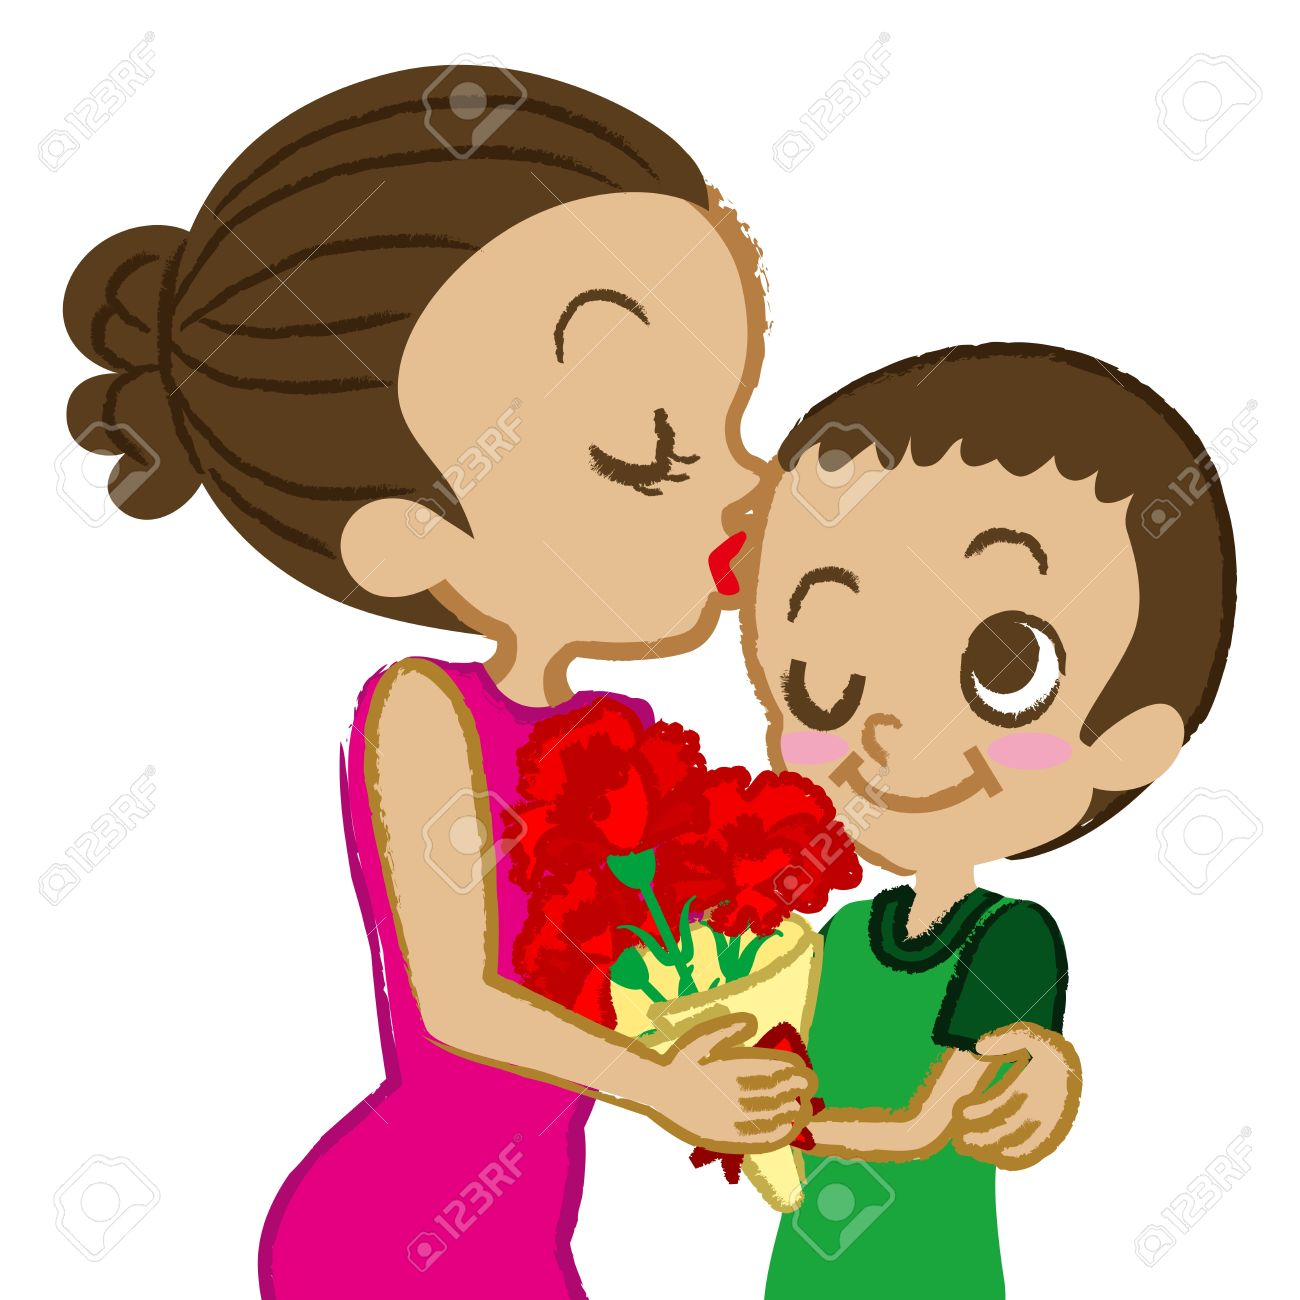 Madre clipart picture black and white Mother Kissing Baby Clipart picture black and white